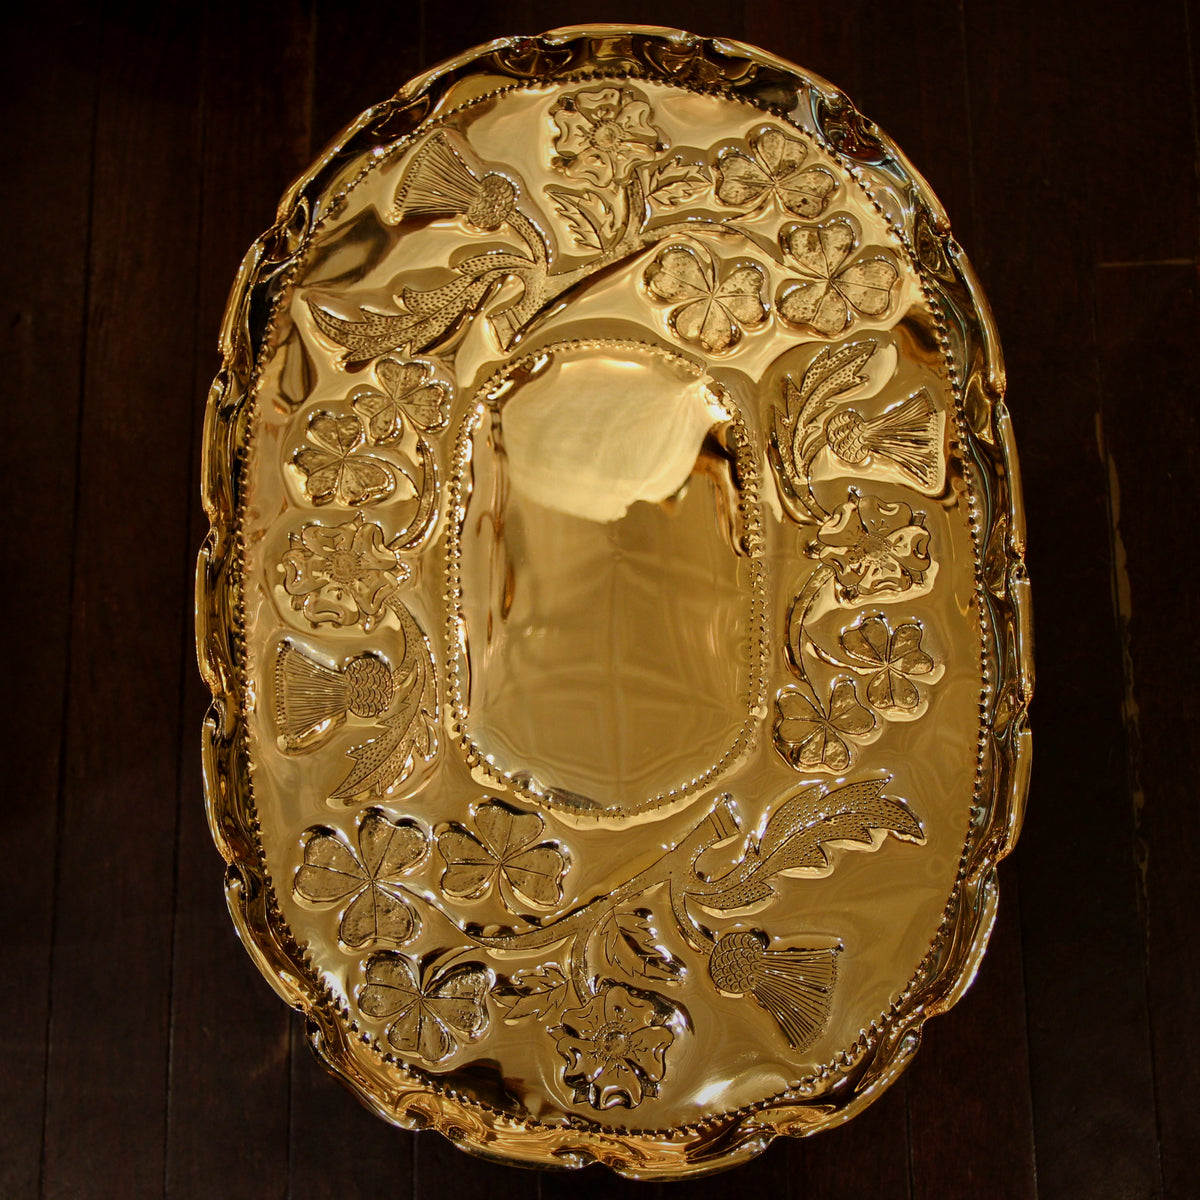 British Isles Brass Tray